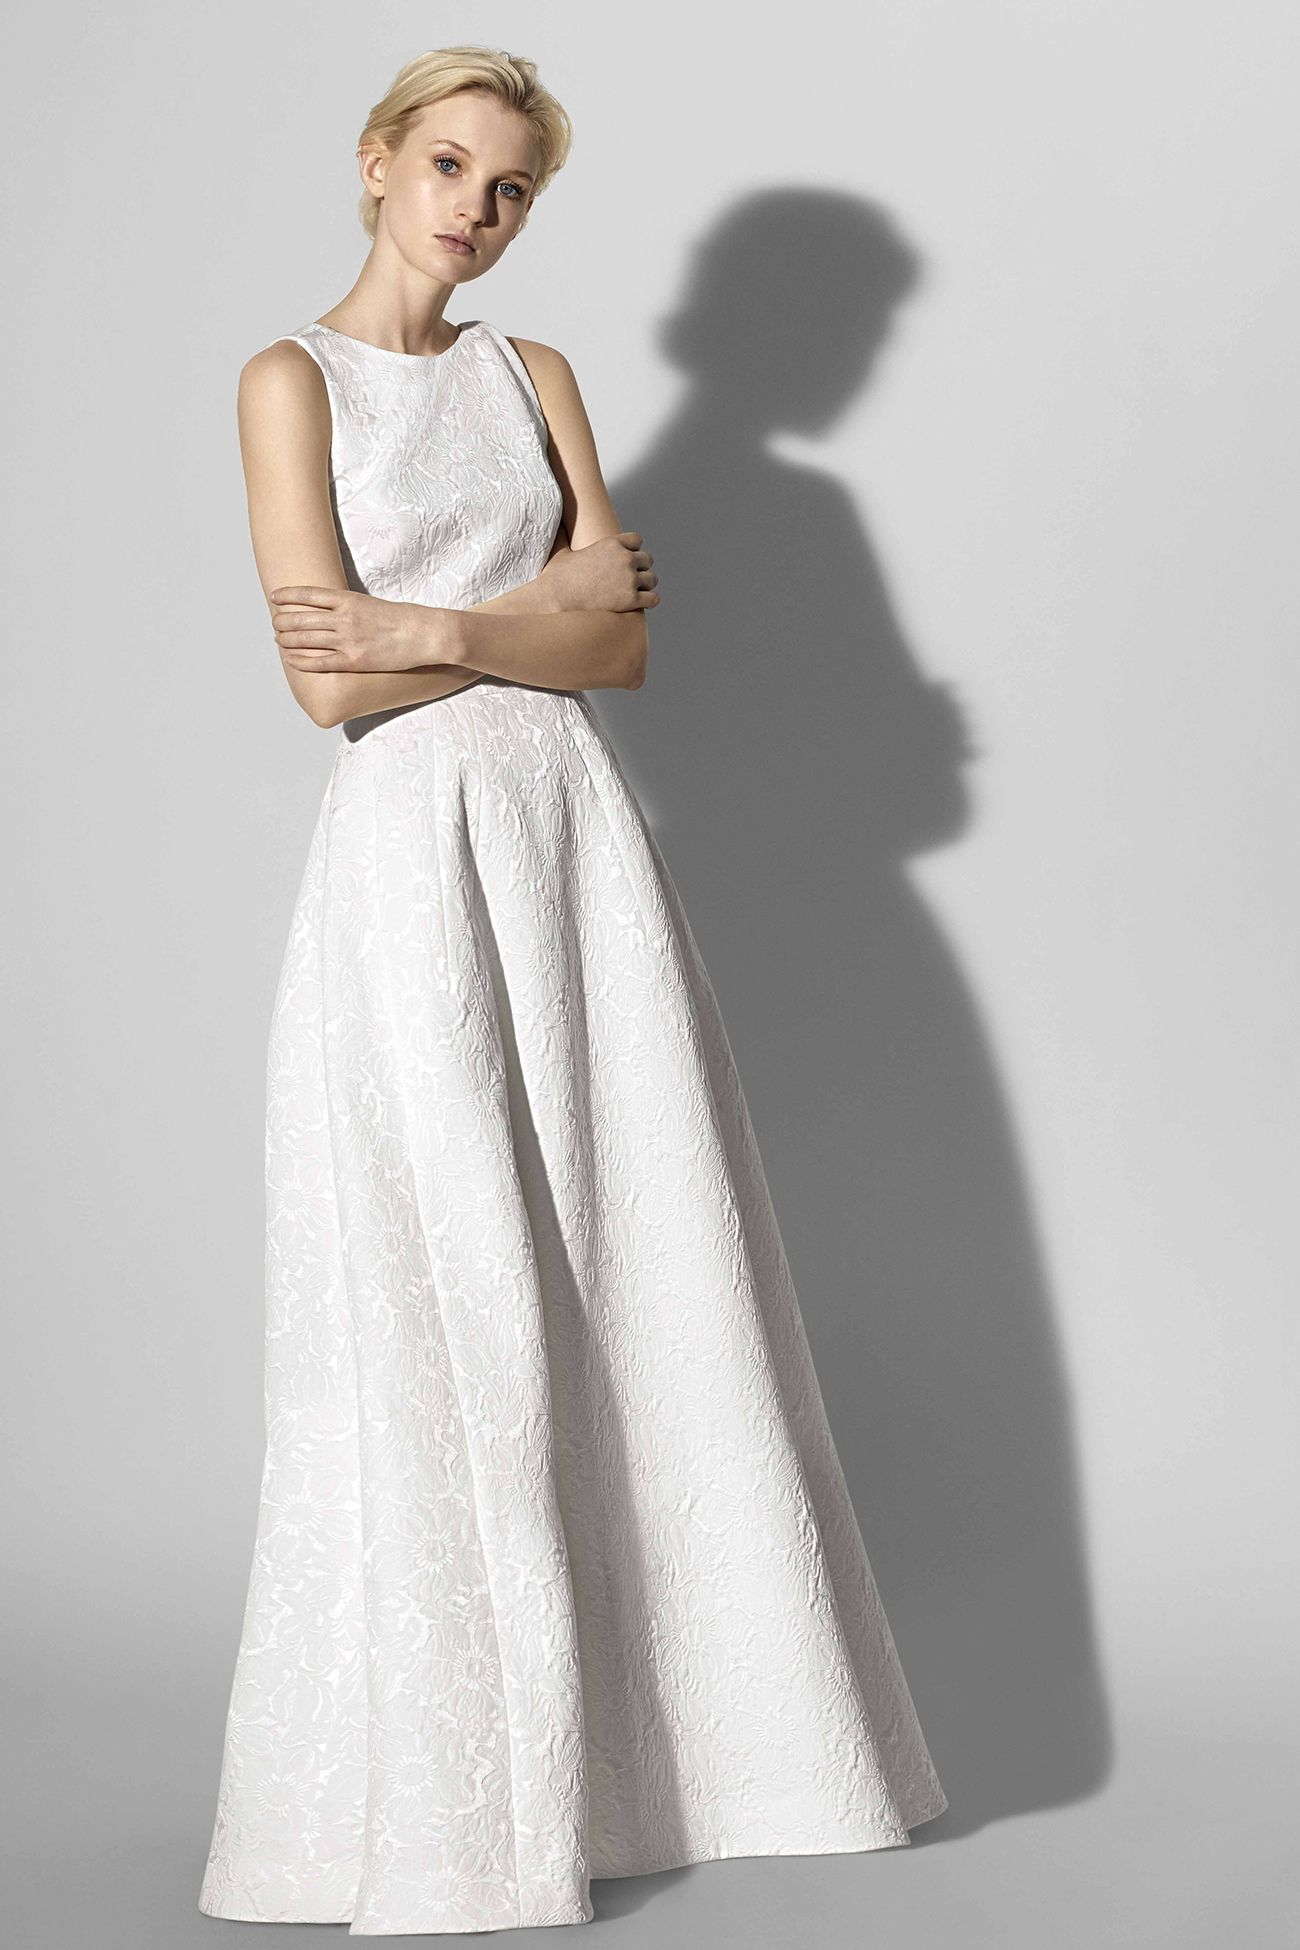 Carolina herrera spring look couture wedding gowns